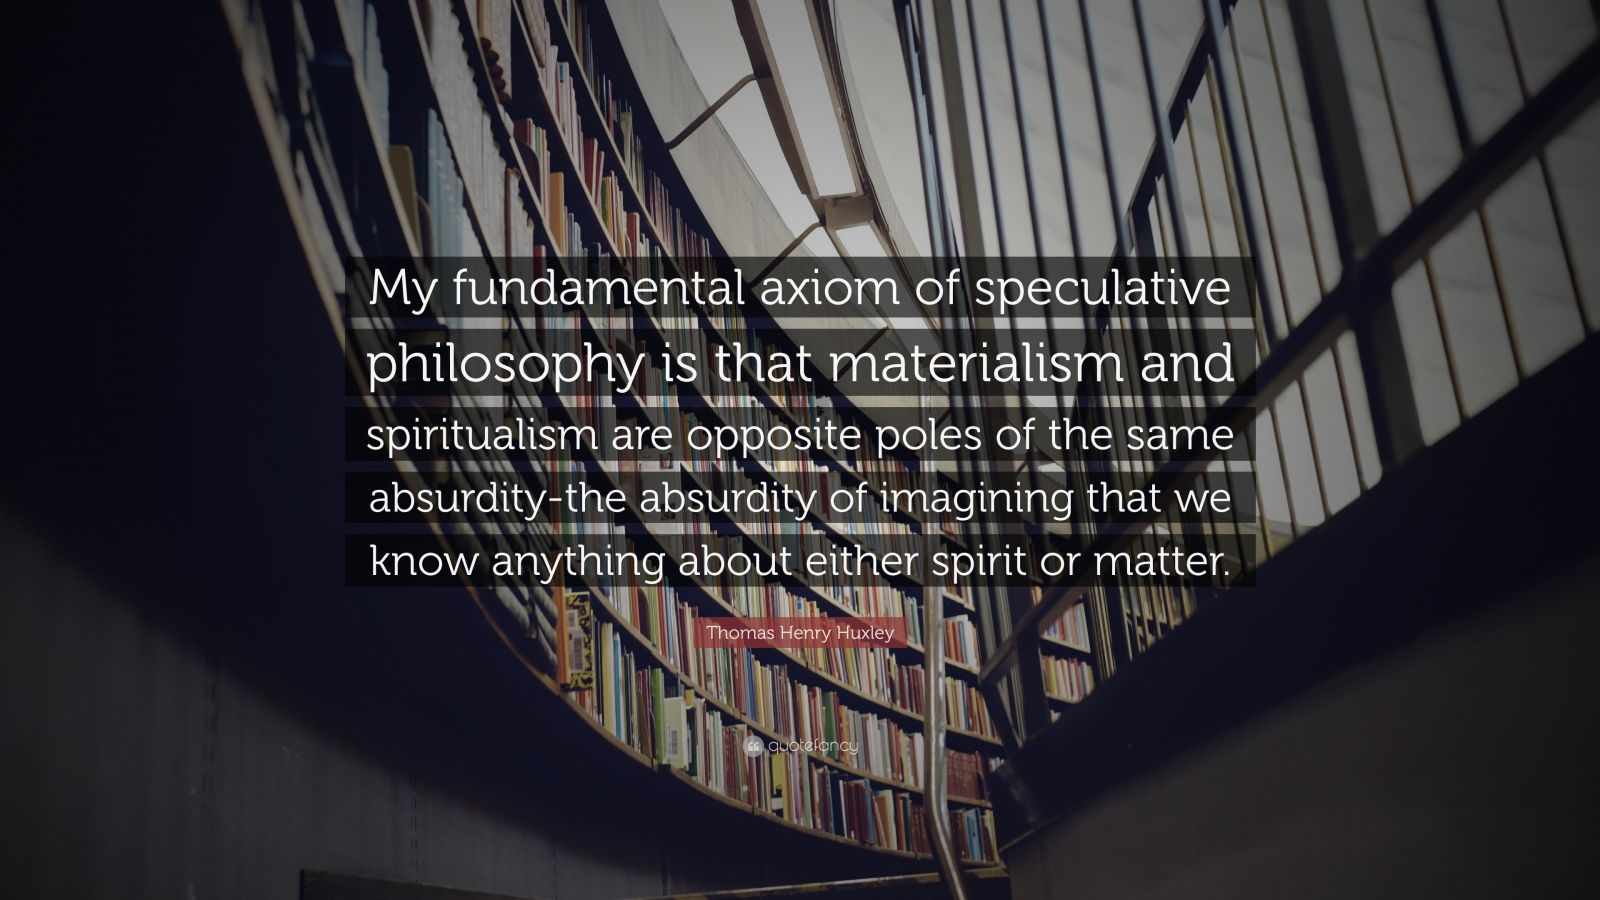 """Thomas Henry Huxley Quote: """"My fundamental axiom of speculative philosophy is that materialism and spiritualism are opposite poles of the same absurdity-the absurdity of imagining that we know anything about either spirit or matter."""""""